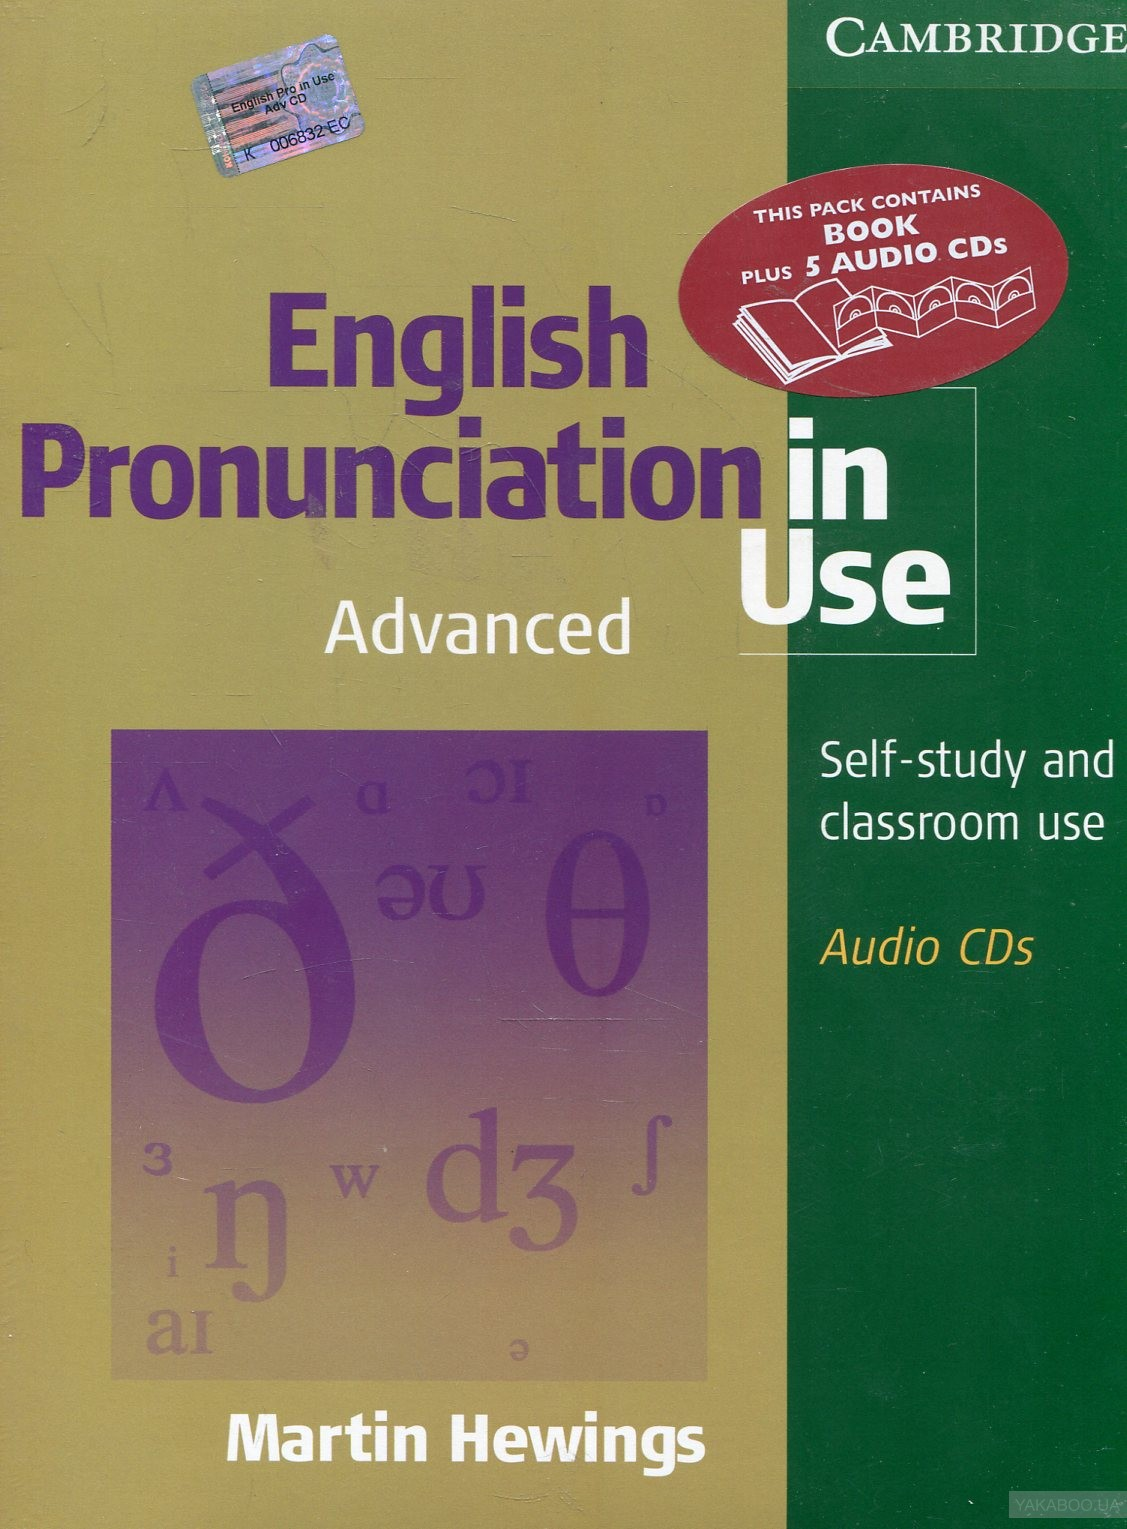 English pronunciation in use for advanced students (+